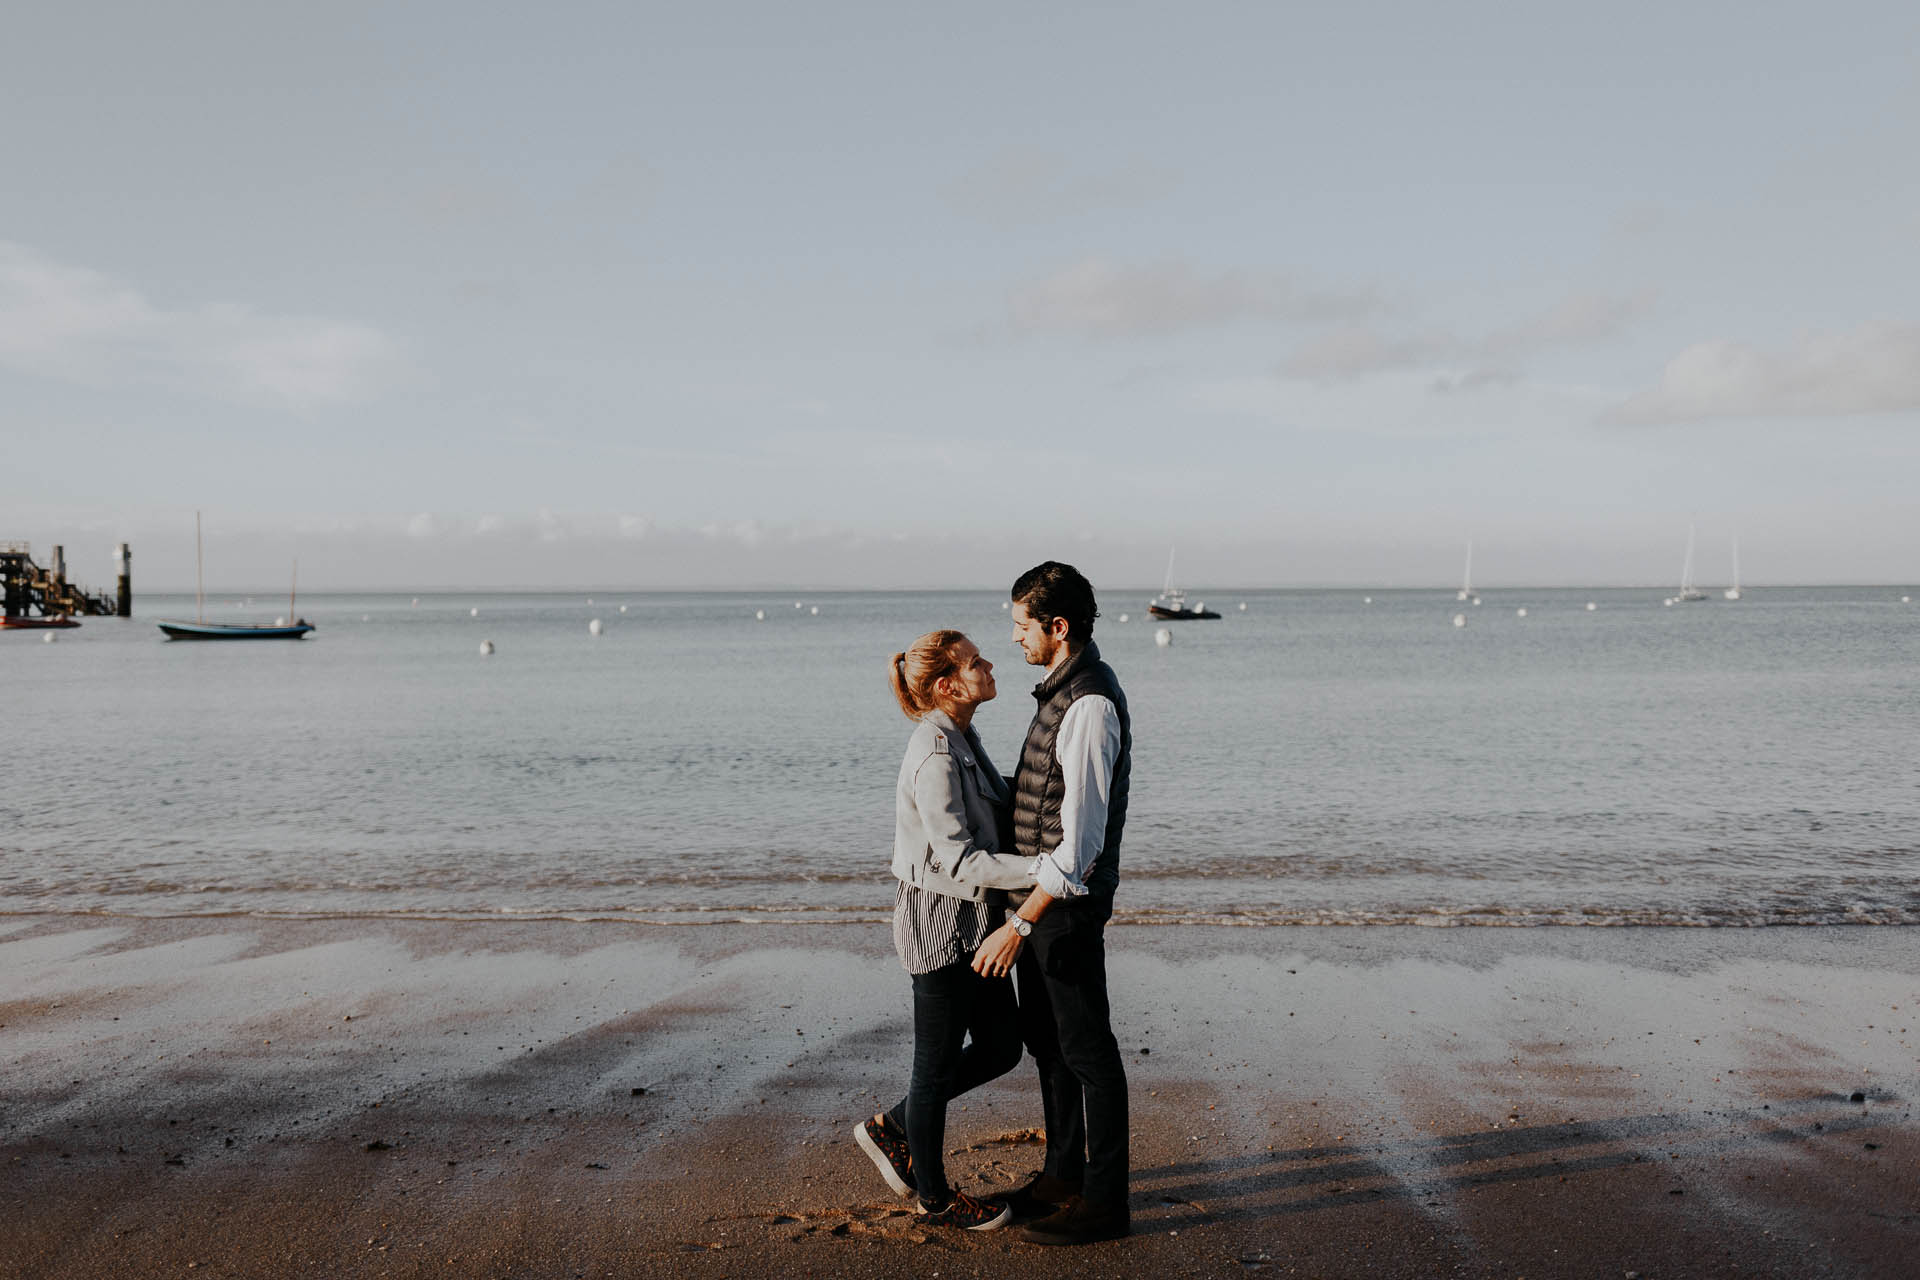 séance_engagement_noirmoutier_flavie_nelly_photographe_nantes-33